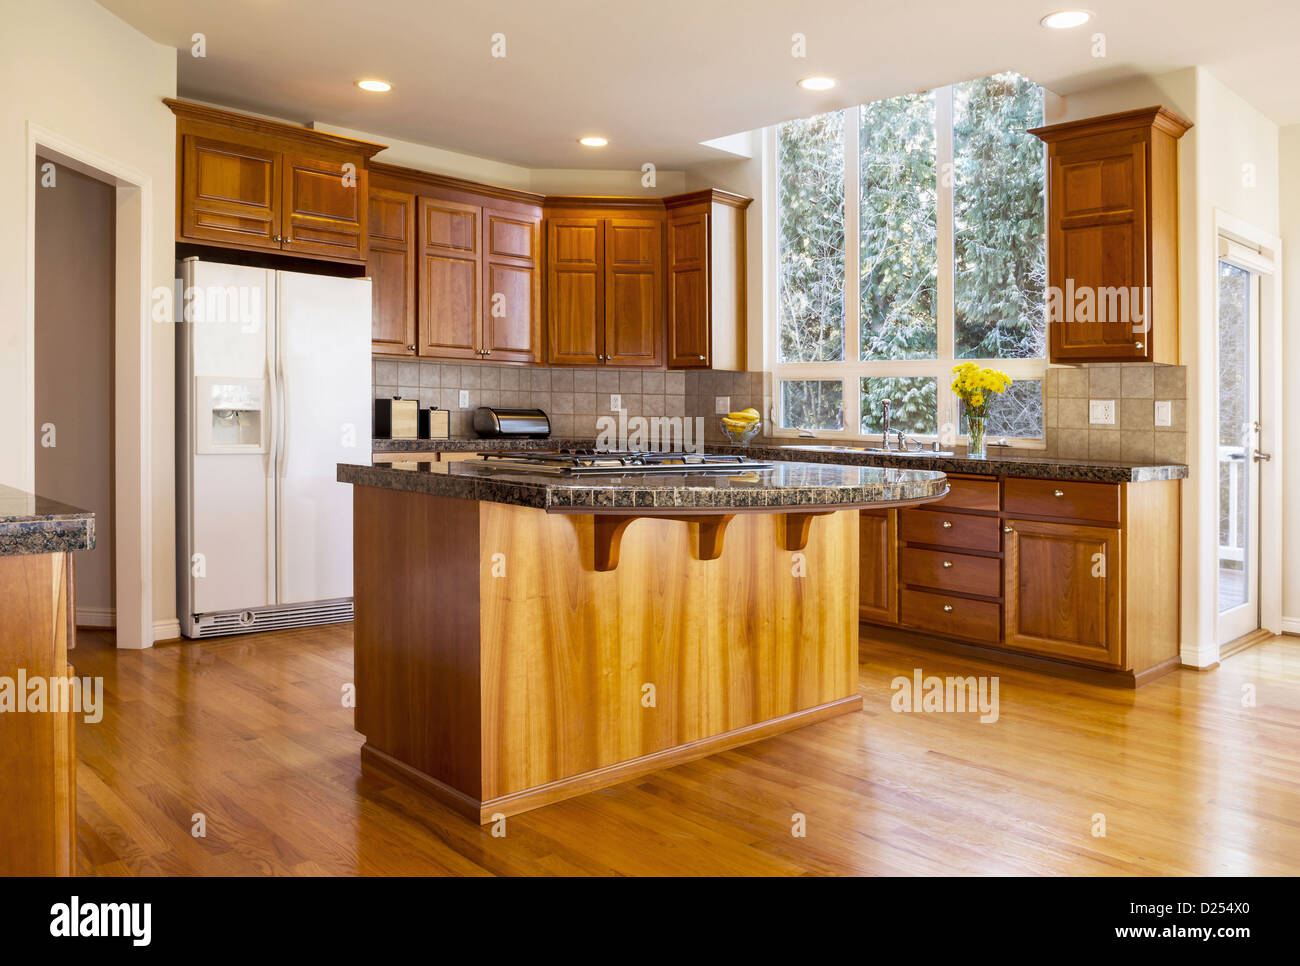 Red Kitchens With Oak Cabinets Modern Daylight Kitchen With Solid Red Oak Flooring